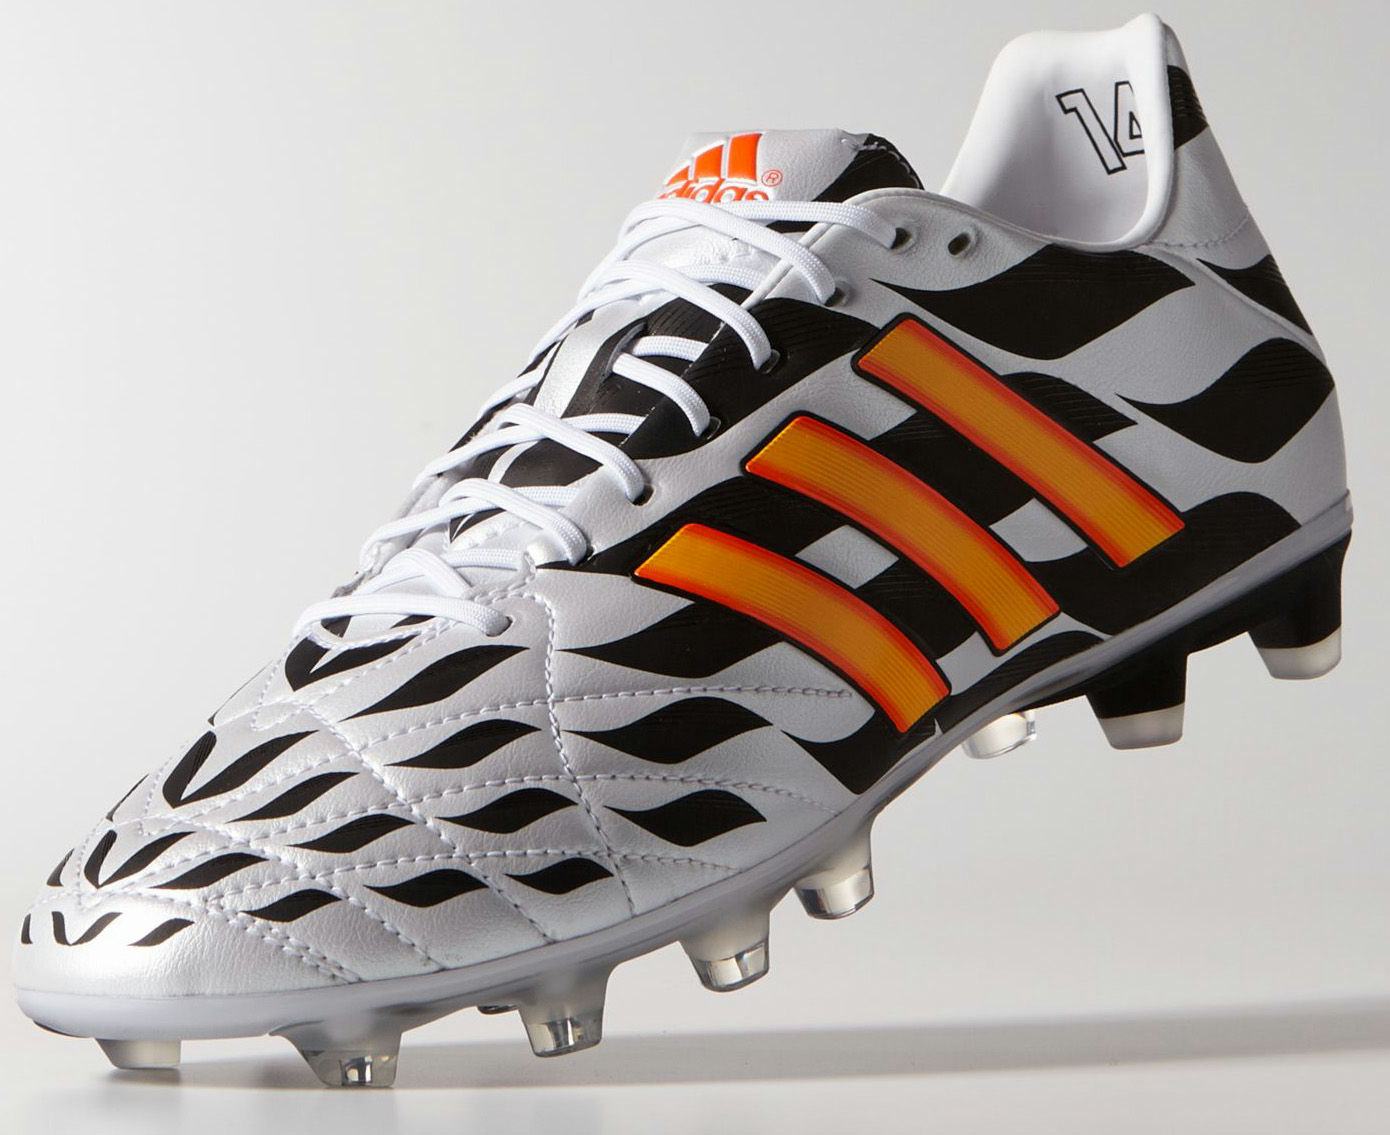 adidas adipure 11pro 2014 battle pack world cup boot. Black Bedroom Furniture Sets. Home Design Ideas